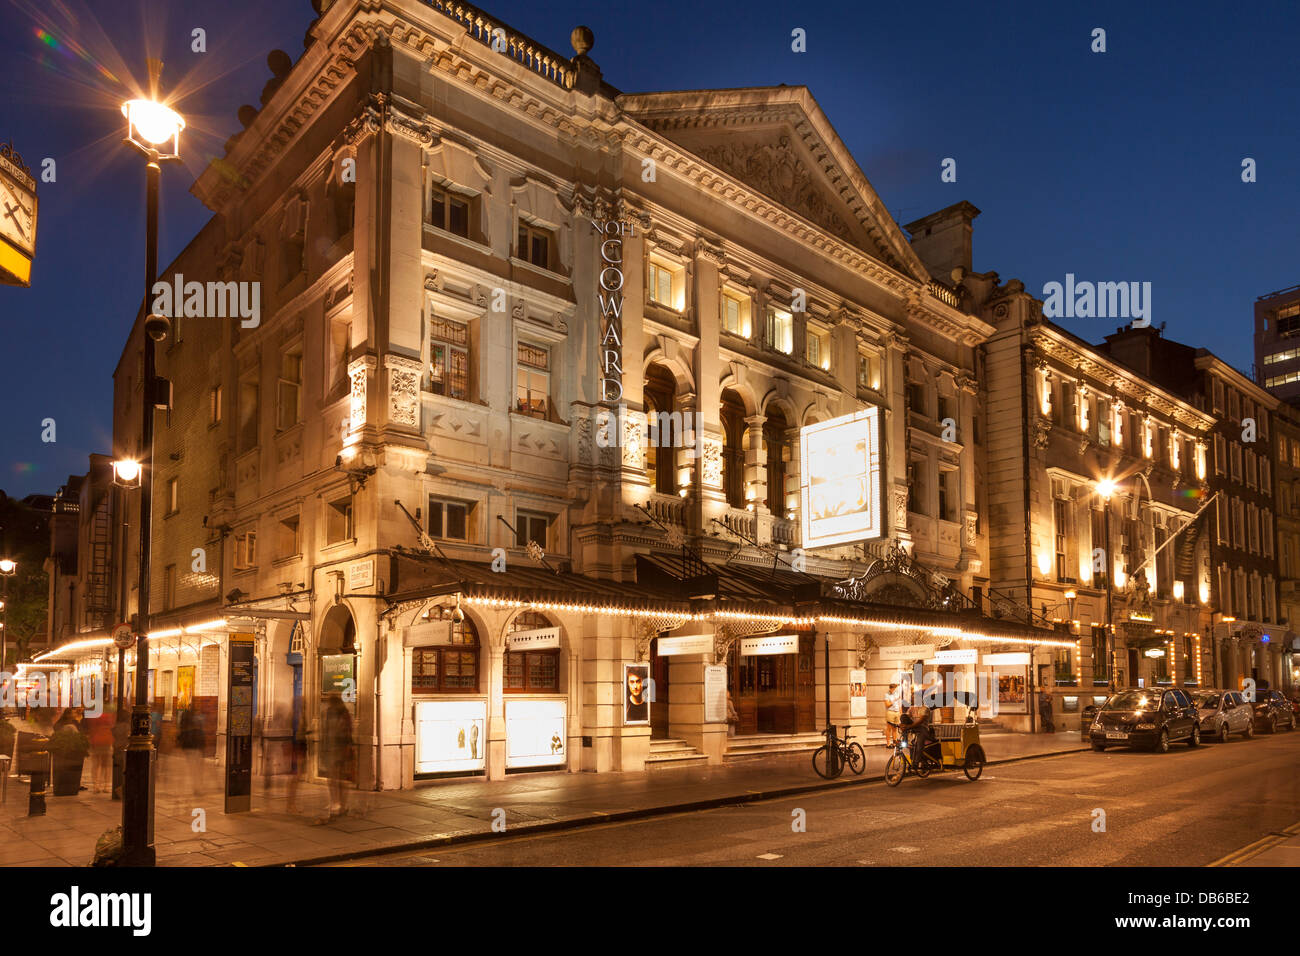 'Noel Coward Theatre' at night,St.Martin's street,London,England - Stock Image